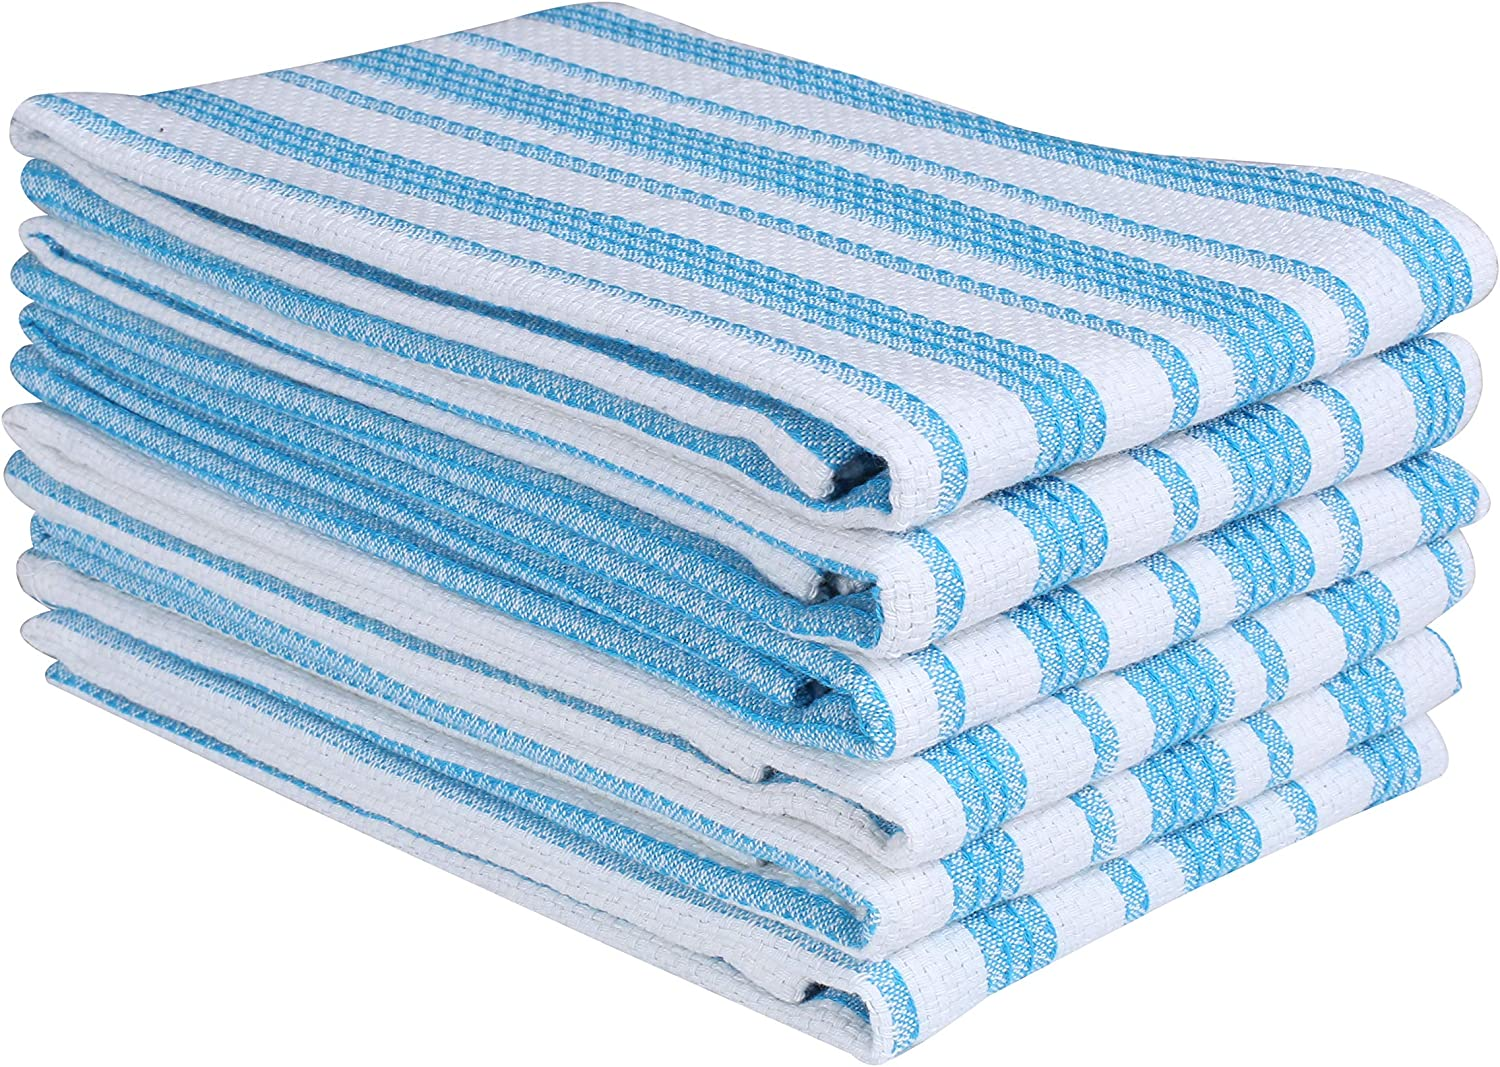 Farmhouse Vintage Kitchen Dish Towel 6 Pack, Dish Cloths, Bar Towels, Tea Towel and Cleaning Towel, Highly Absorbent and Quick Dry Kitchen Towels with Hanging Loop - 16x26 Inch - Turquoise Blue White